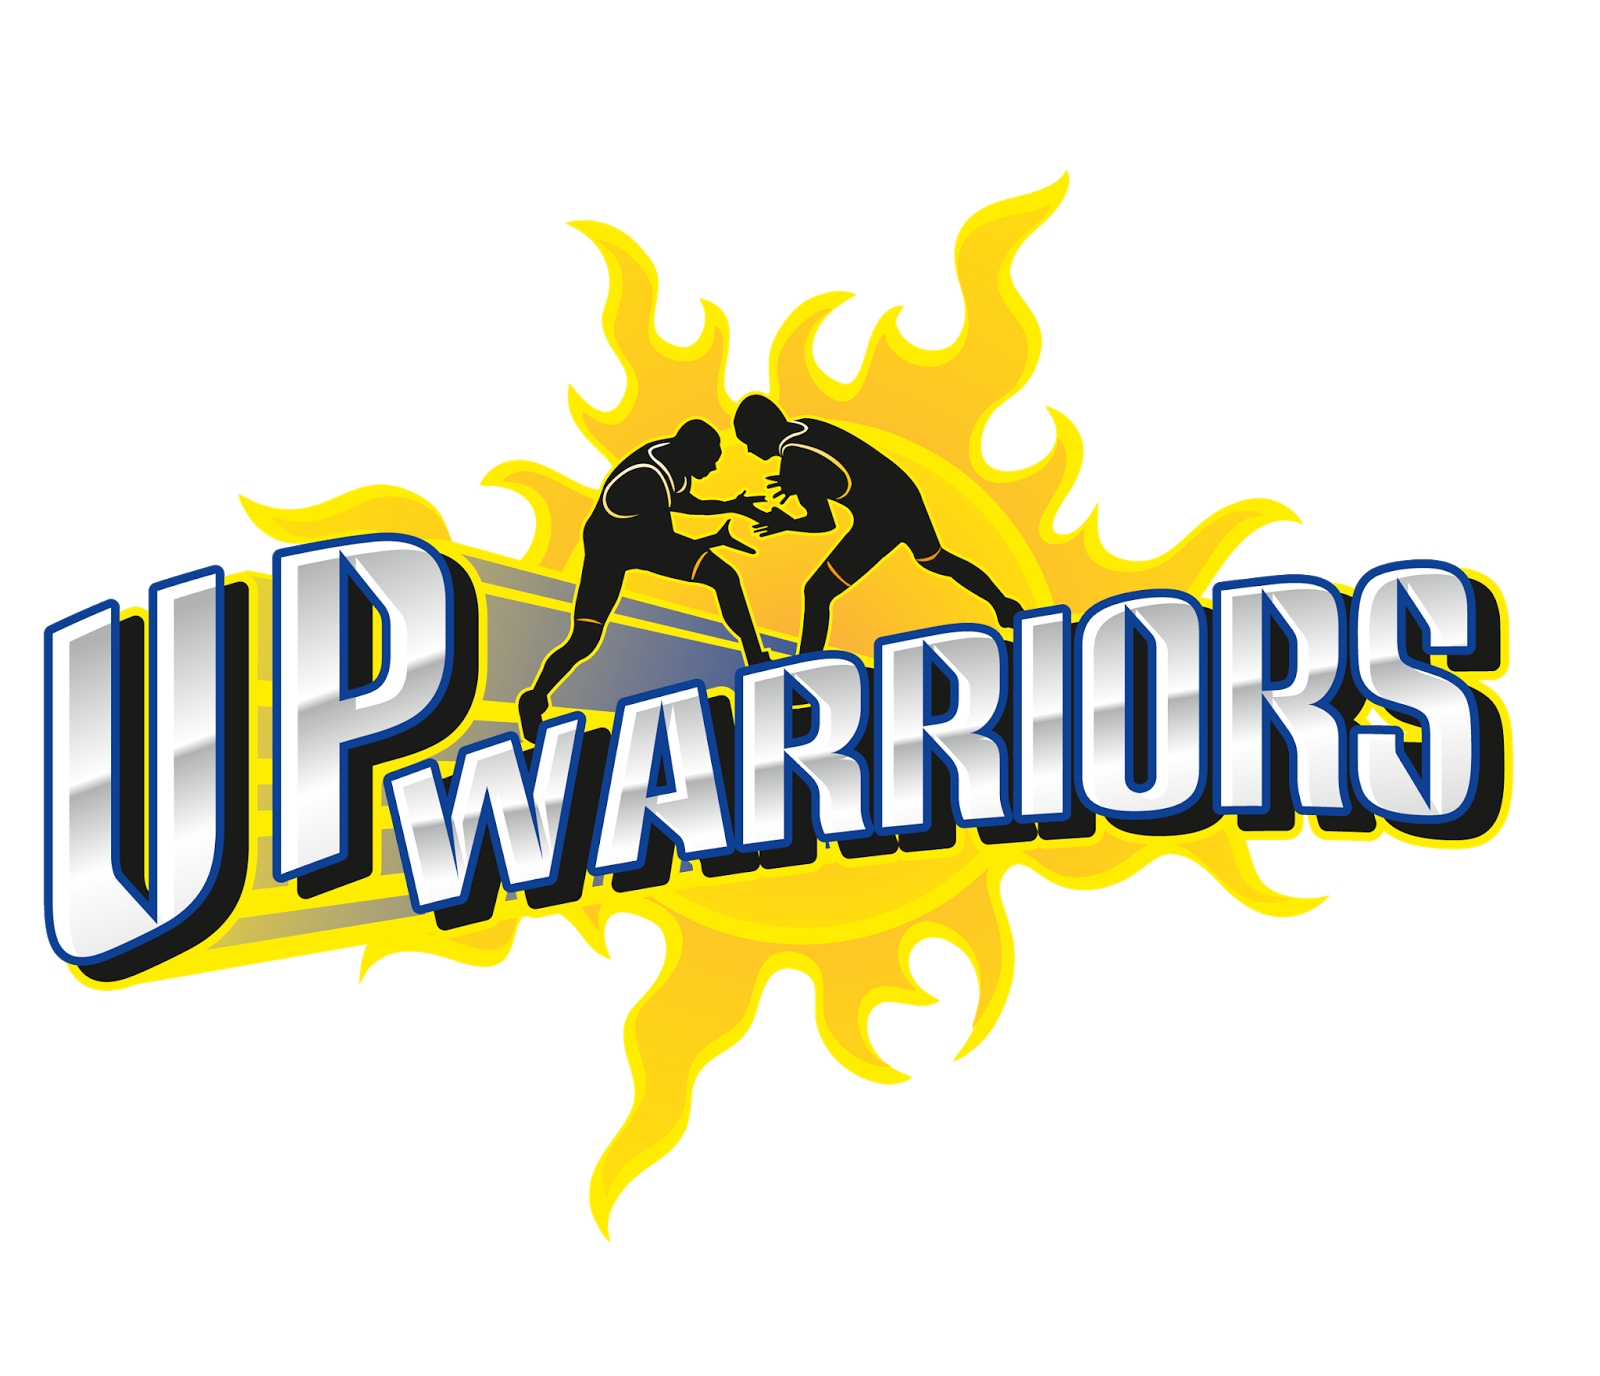 Warriors Game Live Stream For Free: Pro Wrestling League 2015 Live Streaming Details & Match